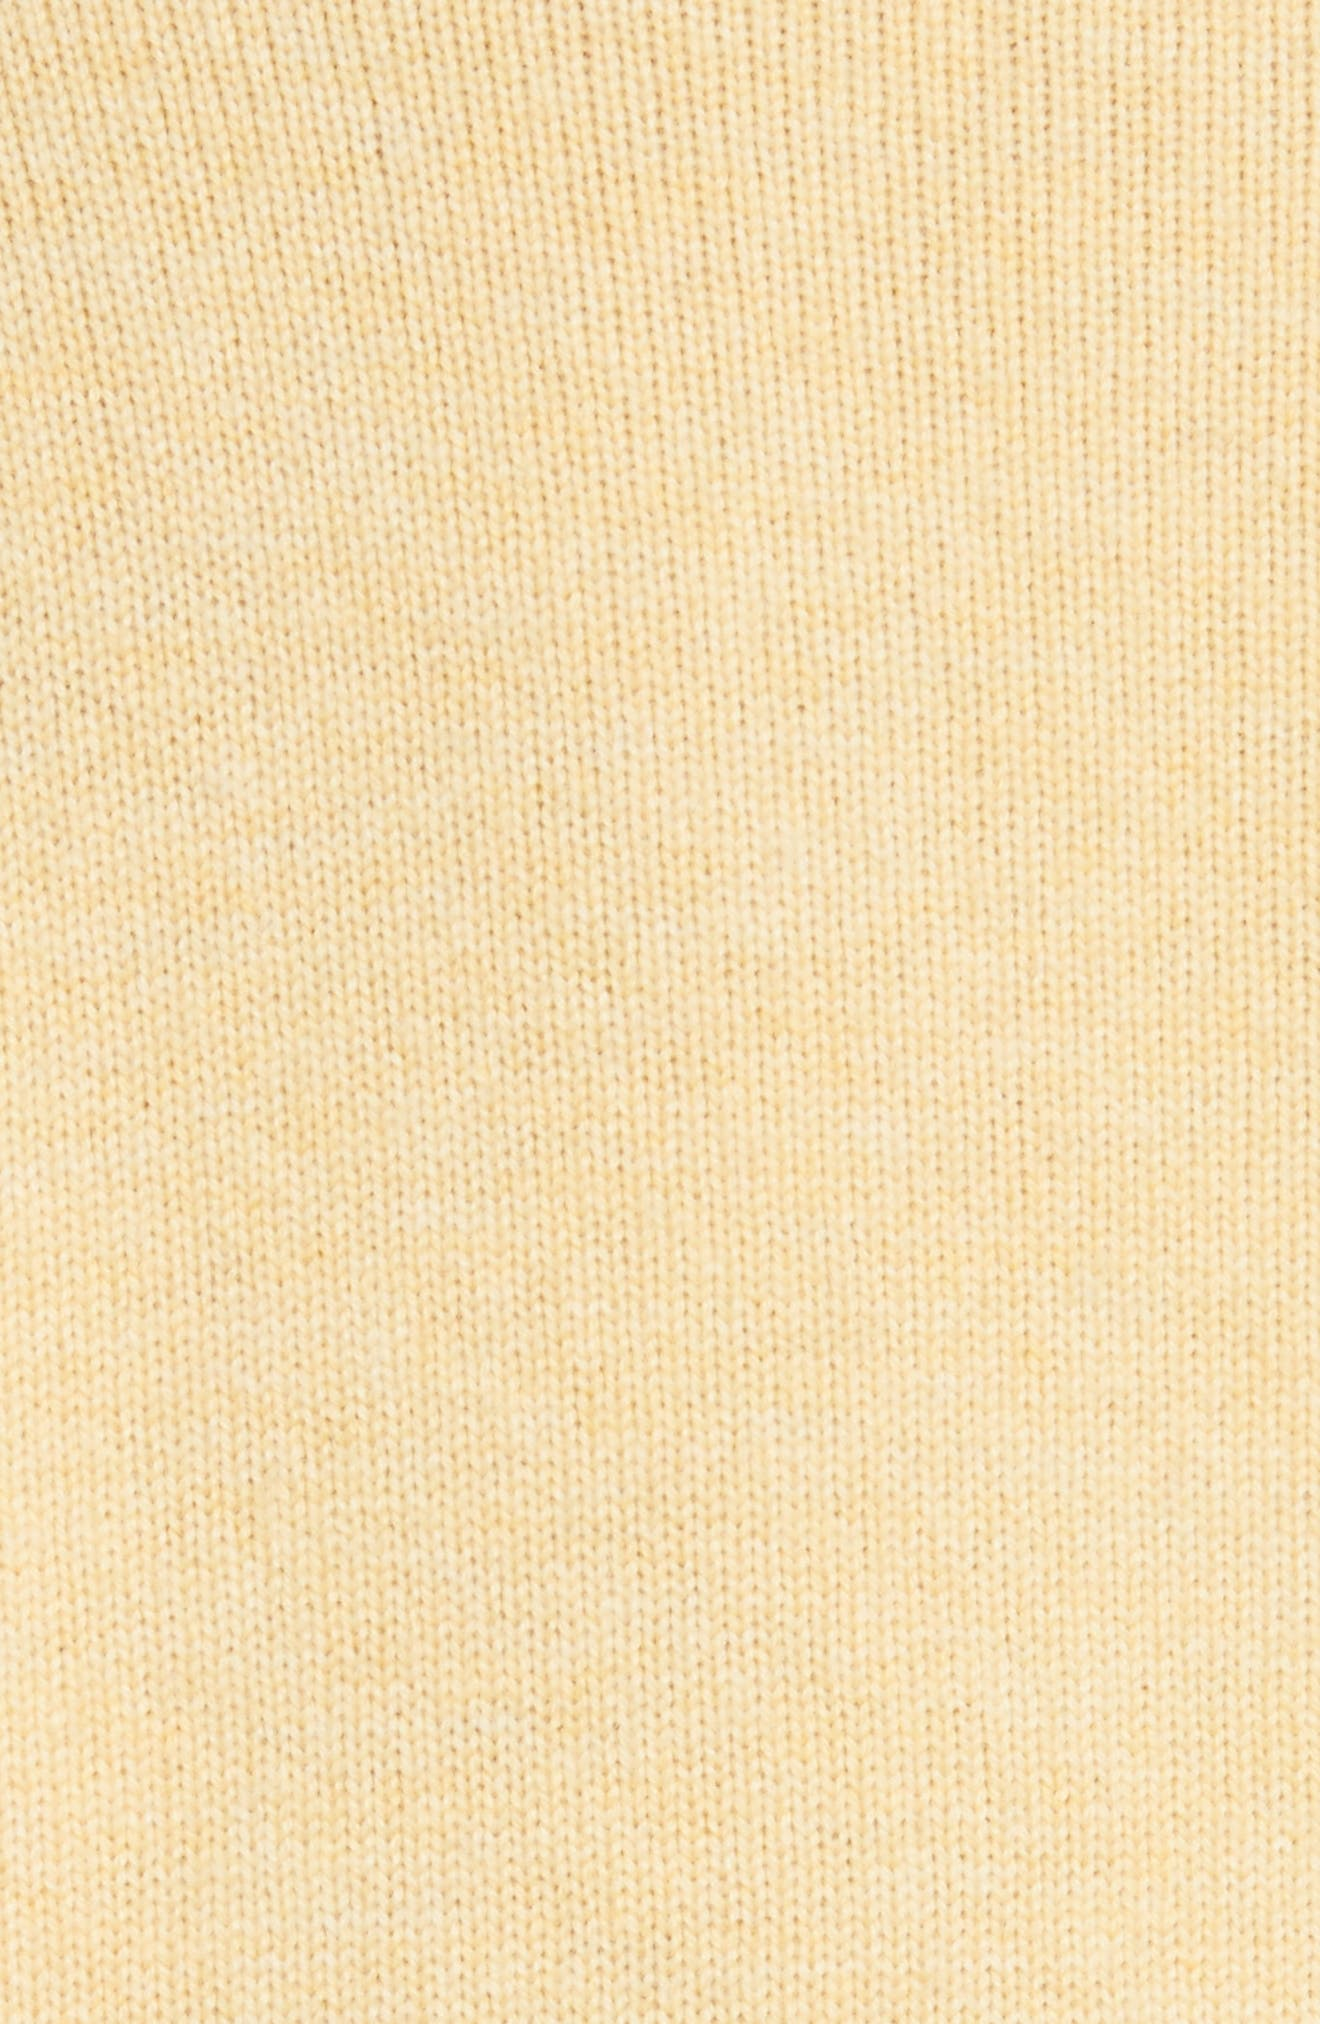 Wool & Cashmere Sweater,                             Alternate thumbnail 5, color,                             700